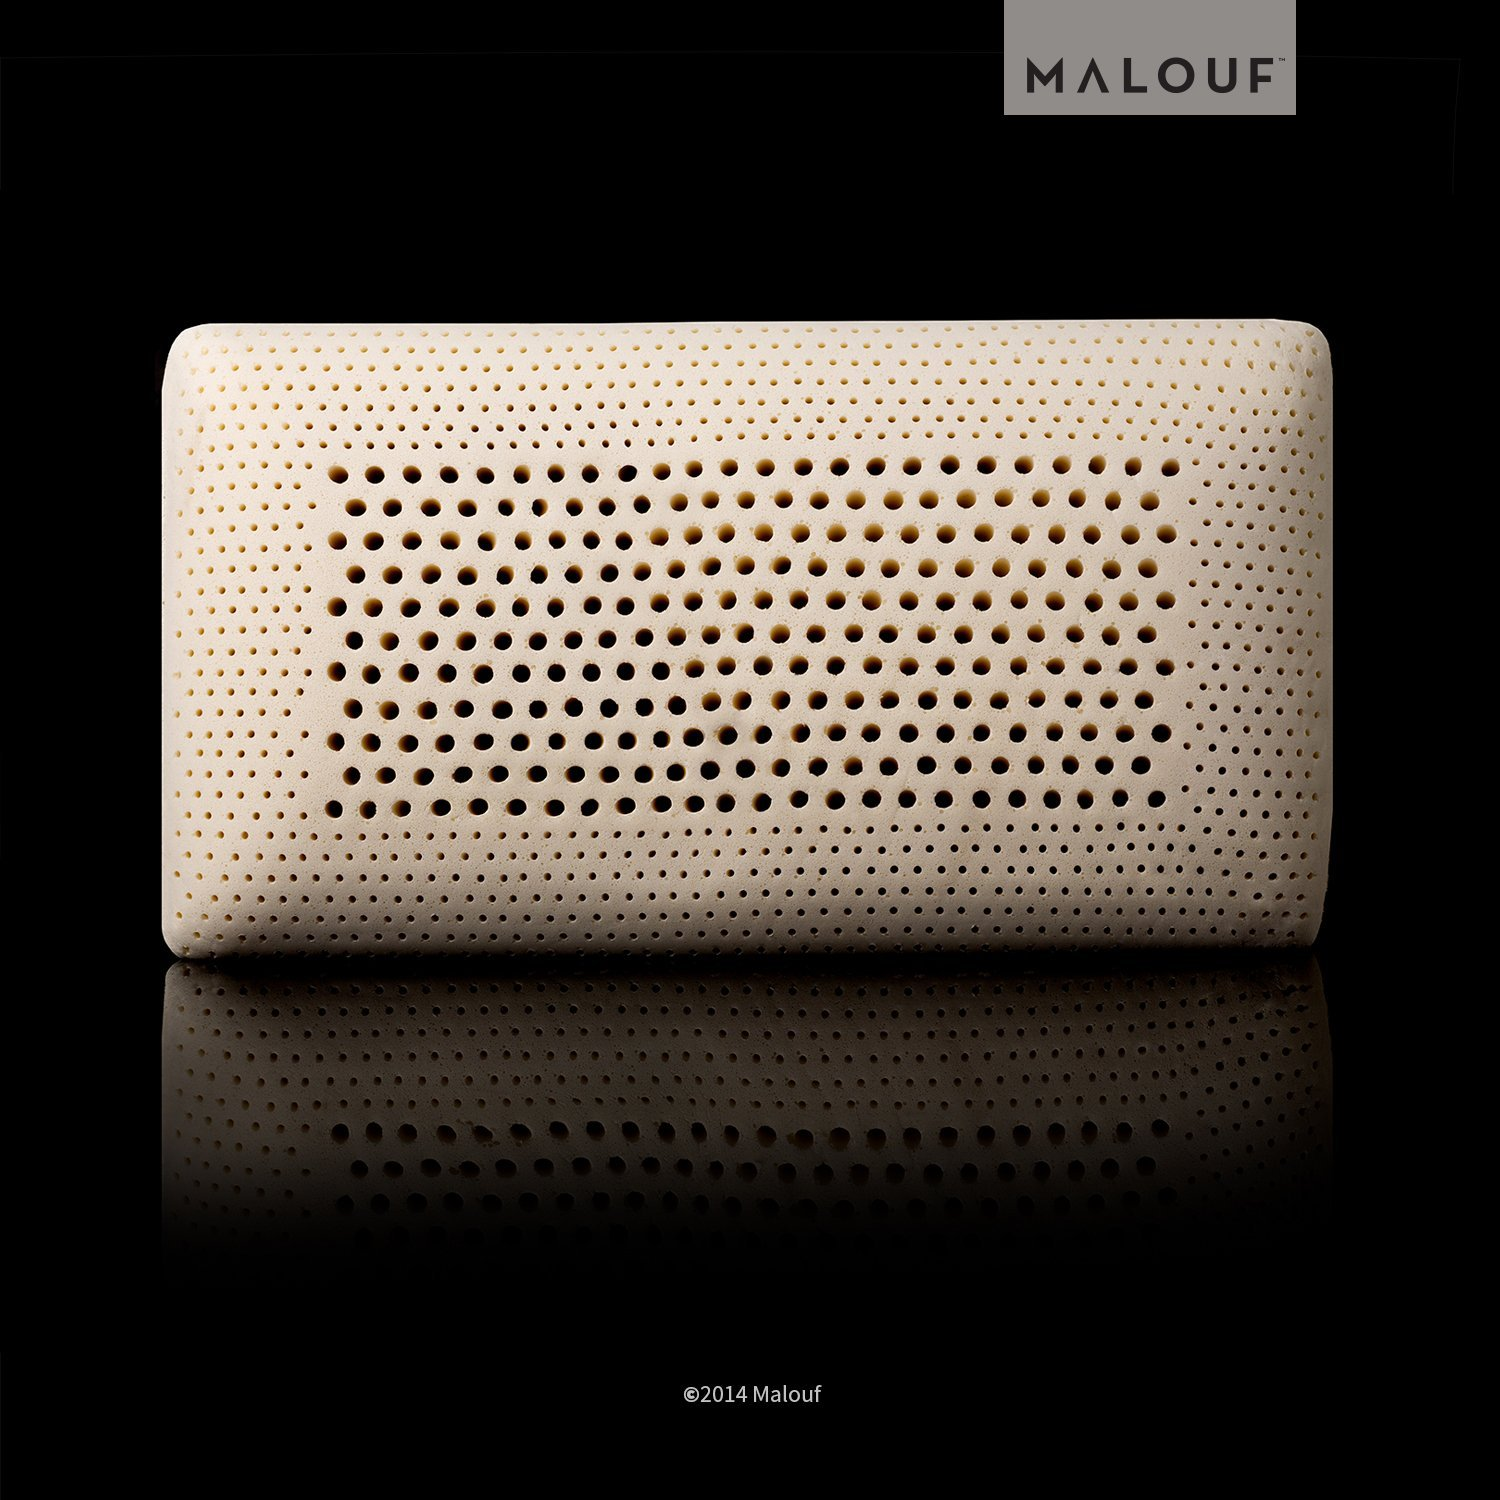 Z By Malouf 100 Natural Talalay Latex Zoned Pillow Review